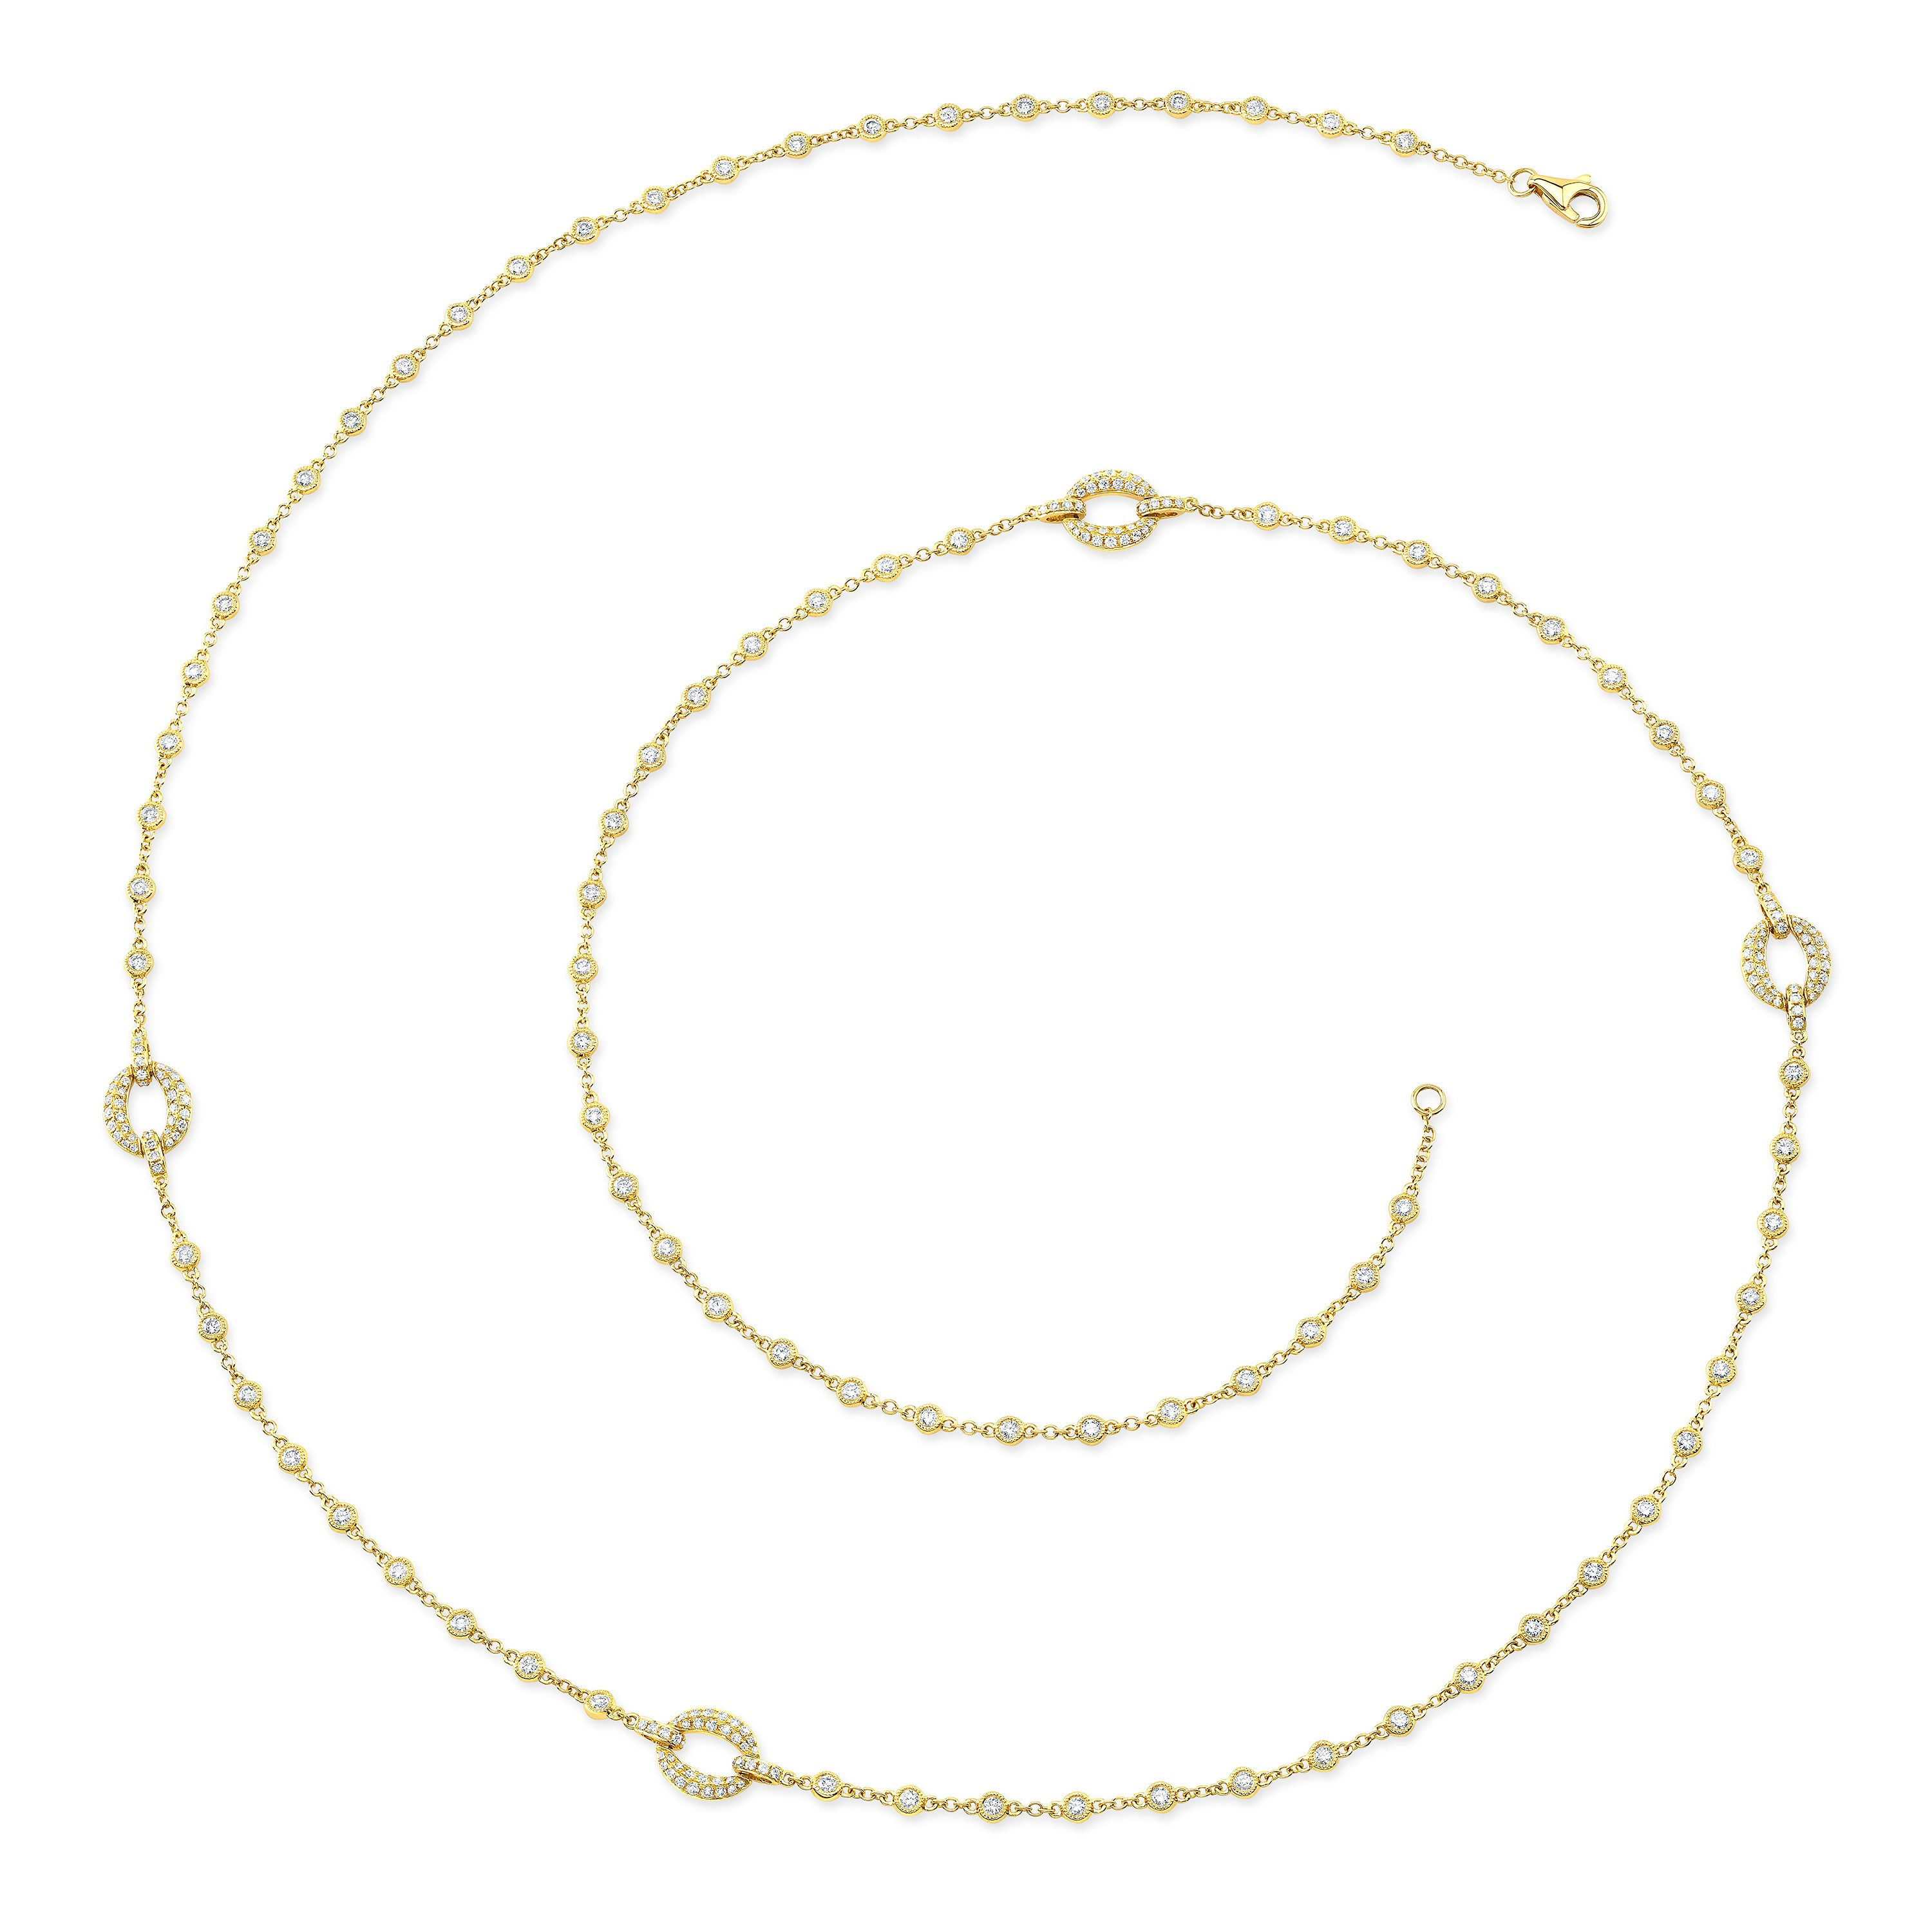 Uneek Diamond Chain Necklace, in 18K Yellow Gold